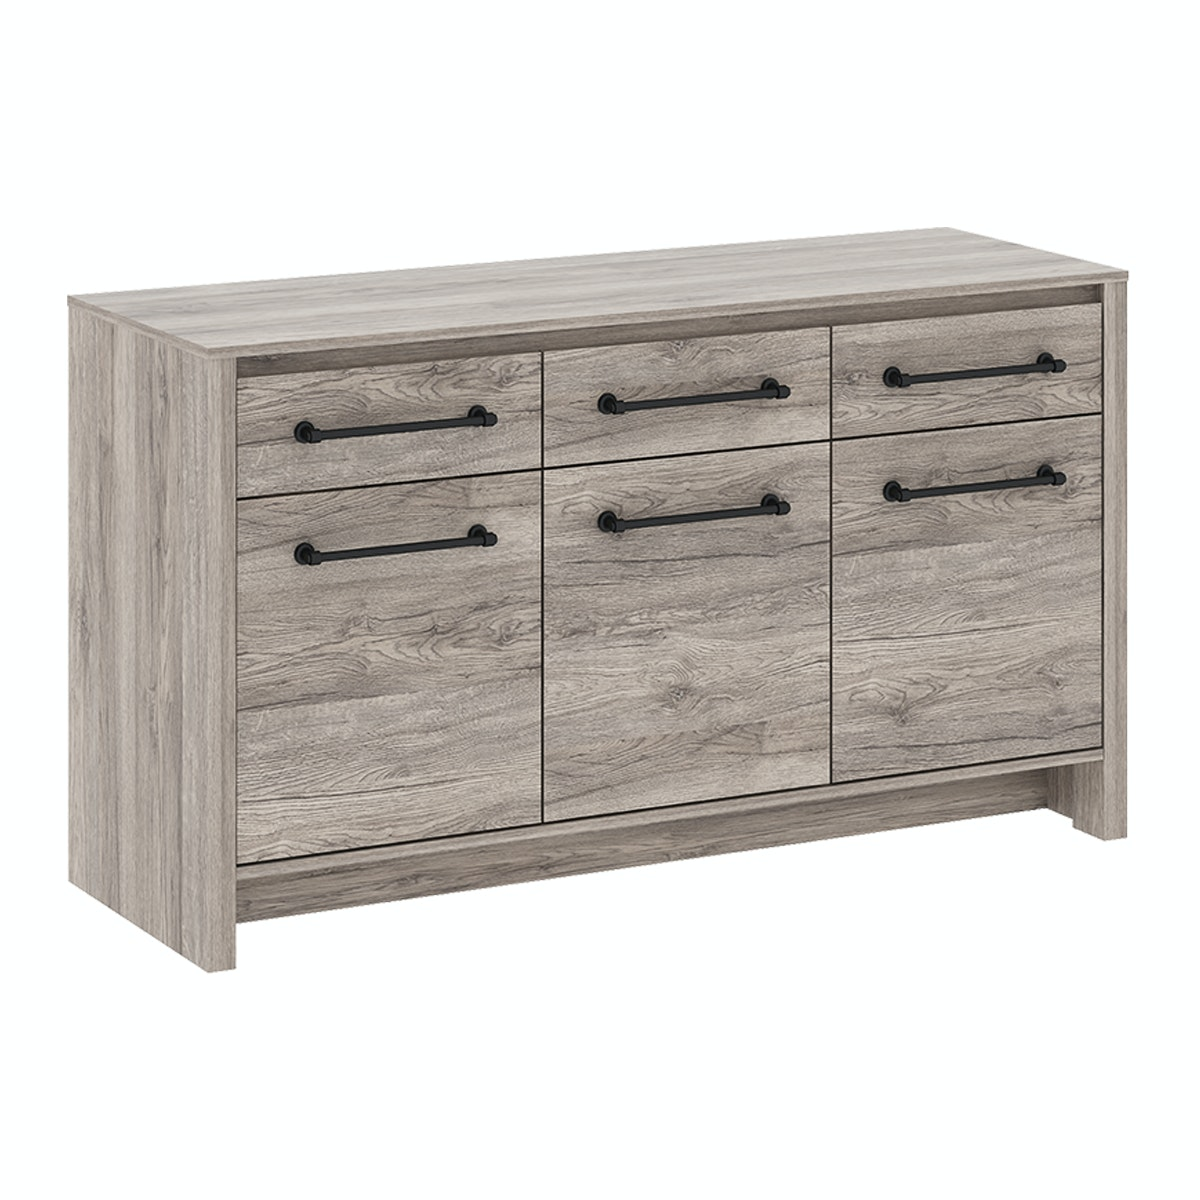 Pro Design Romanov Sideboard 3 Pintu 3 Laci - Sanremo Dark - Beige Leather